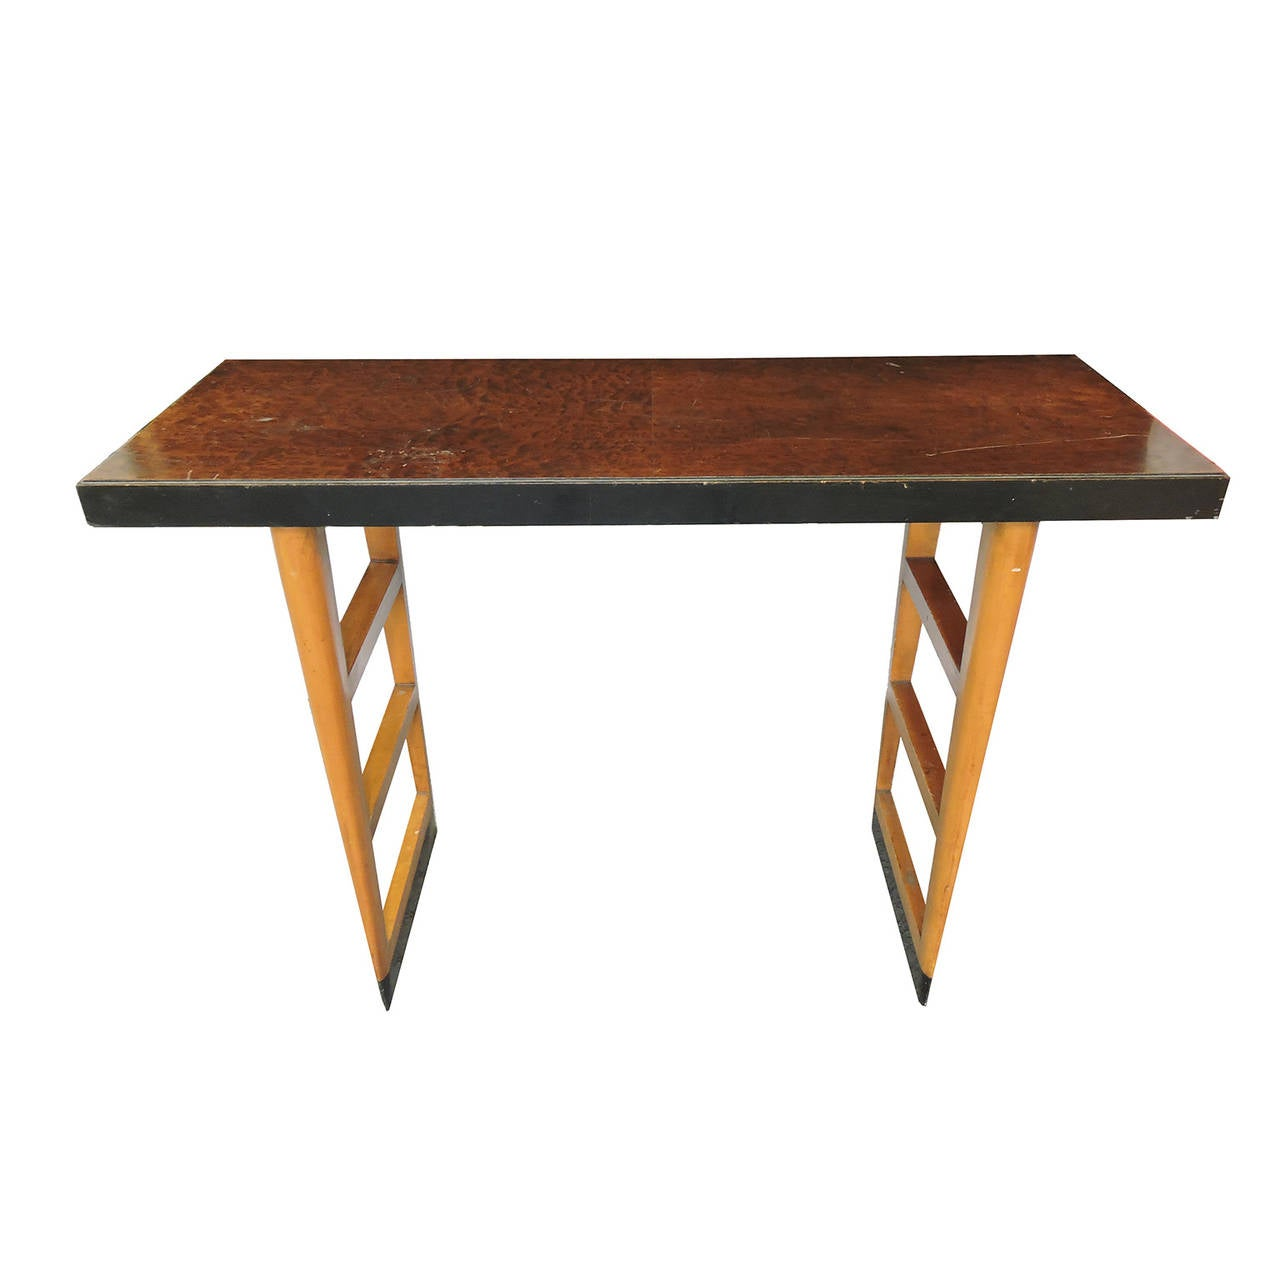 Mid century modern burl wood console table at stdibs